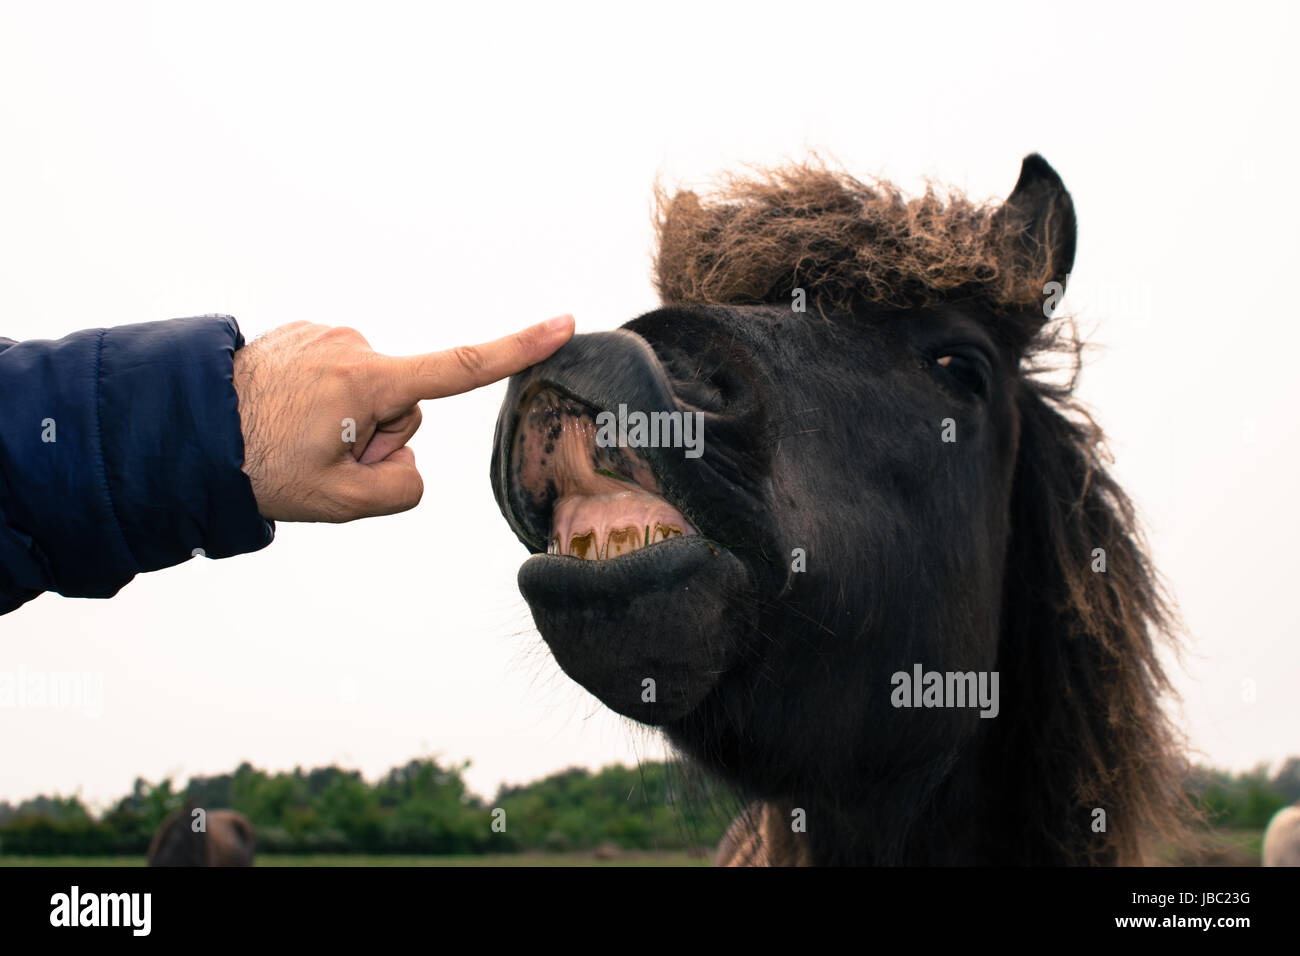 A Funny Face Of A Brown Horse Expression Stock Photo Alamy